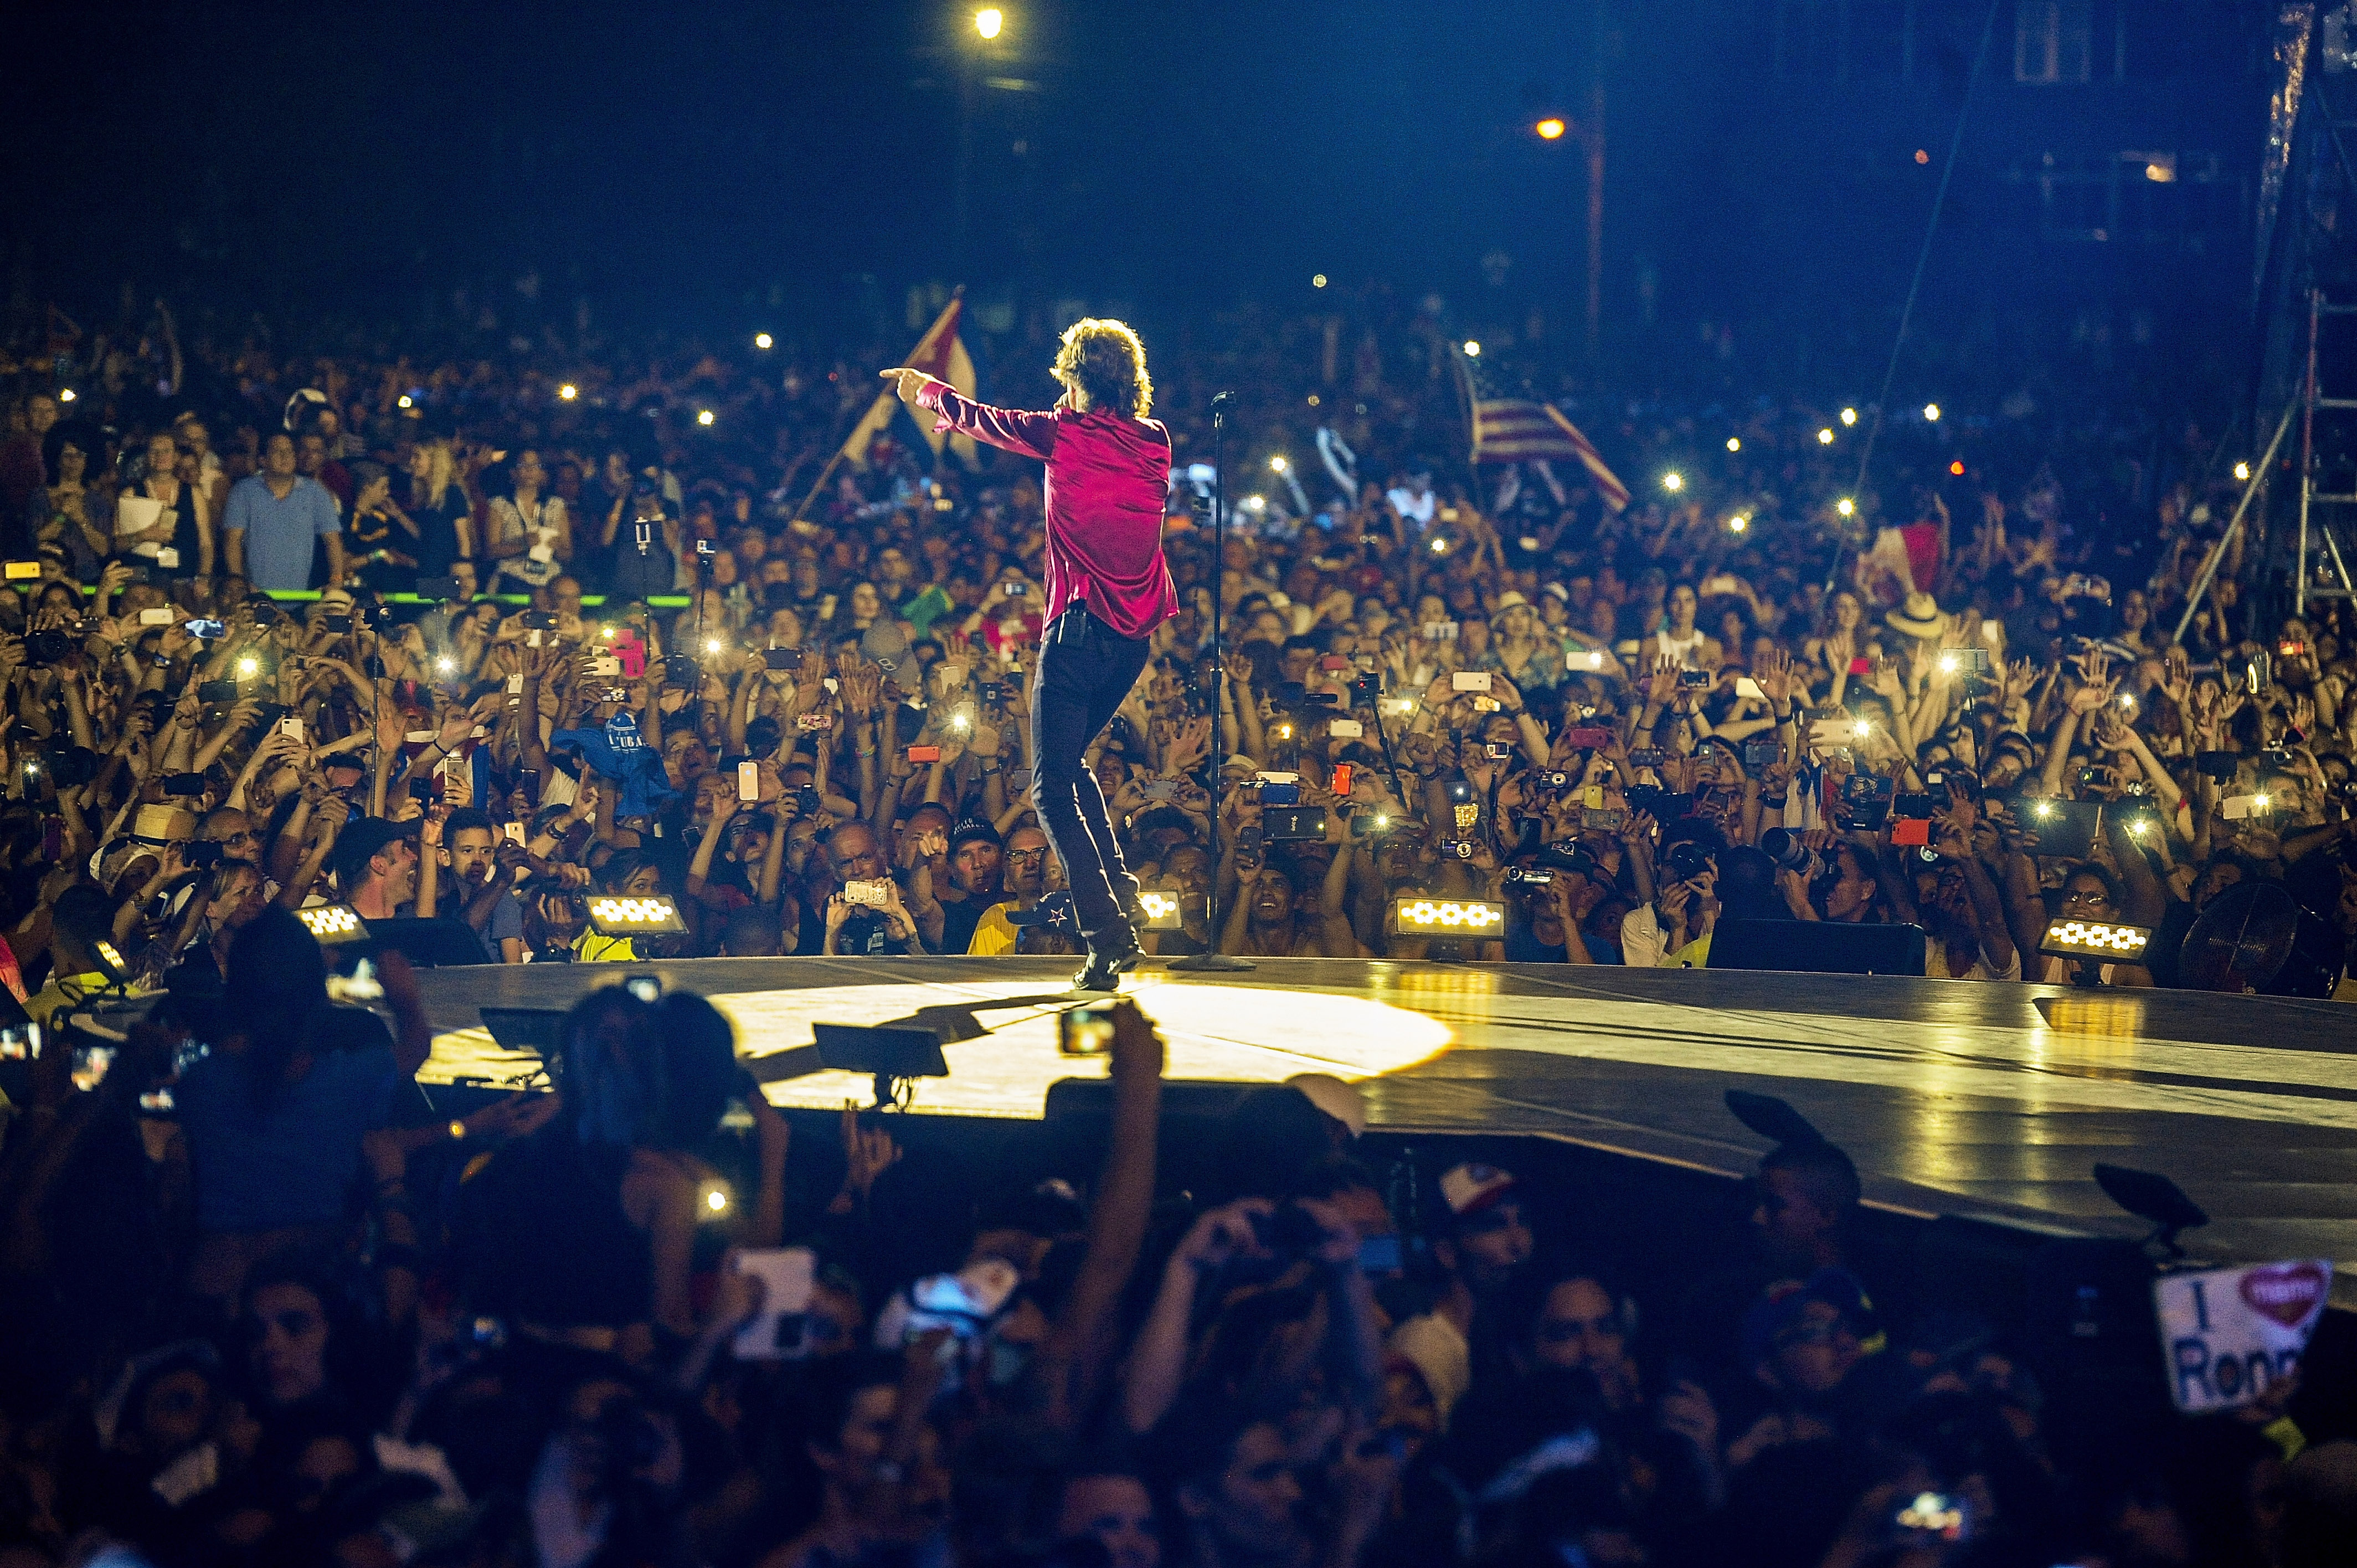 HAVANA, CUBA - MARCH 25:  Mick Jagger performs on stage during The Rolling Stones concert at Ciudad Deportiva on March 25, 20